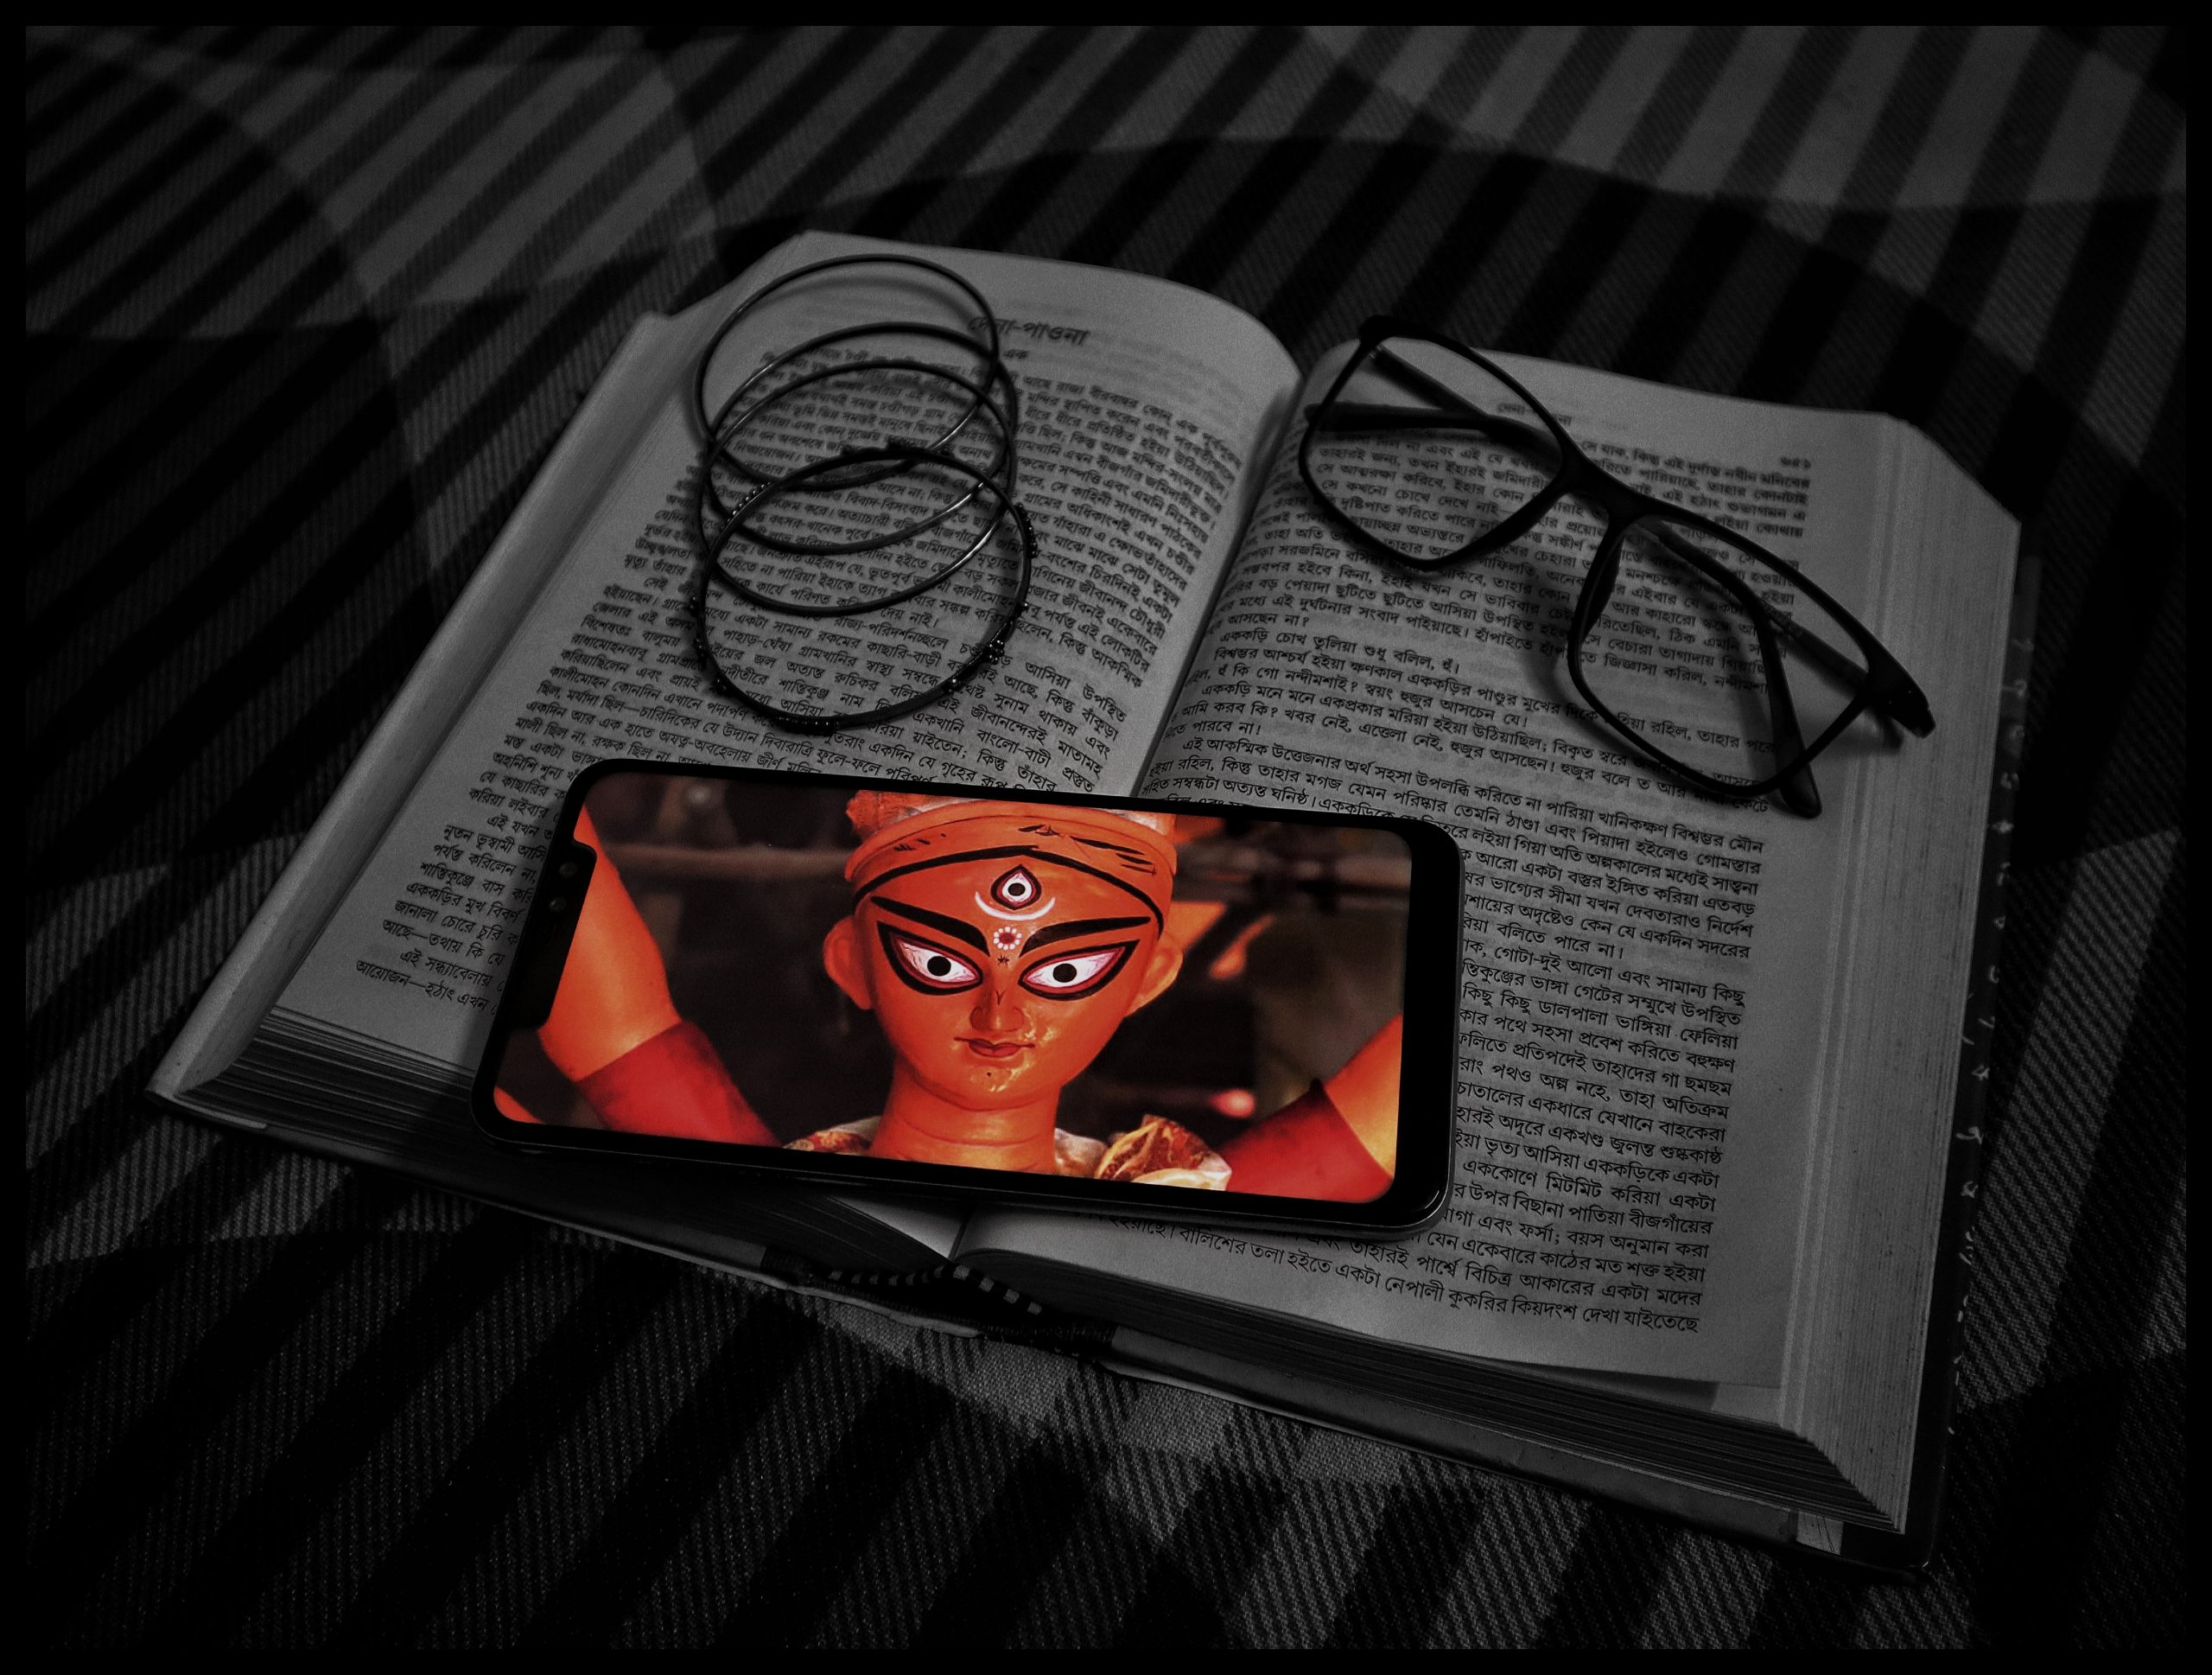 A smartphone with a picture of Ma Durga on it.